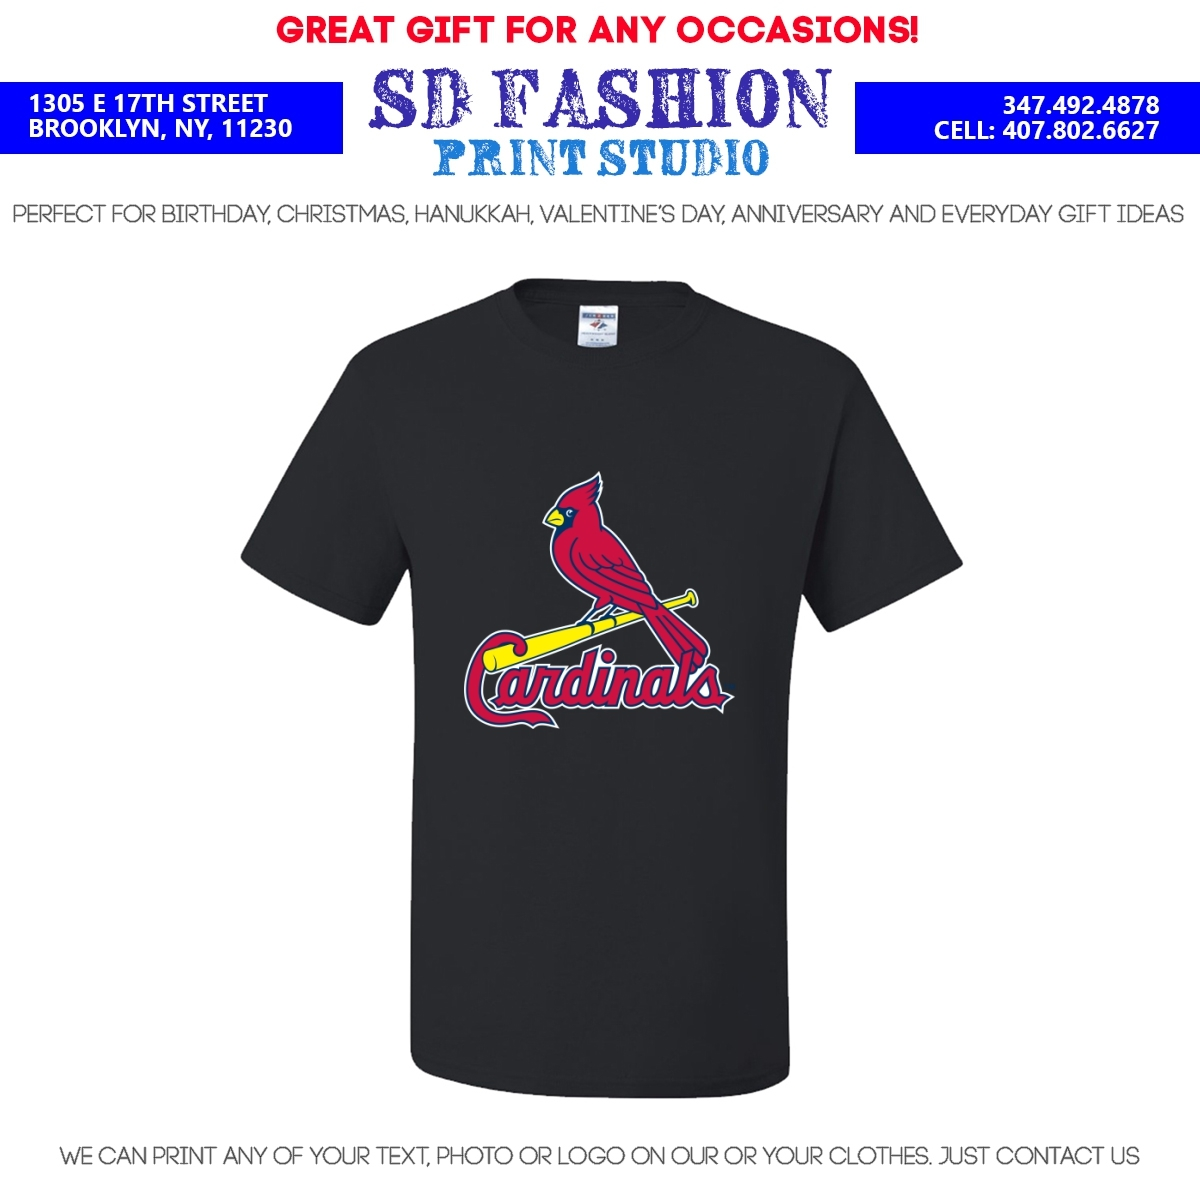 St louis cardinals t shirt many colors sizes free for Cardinal color t shirts